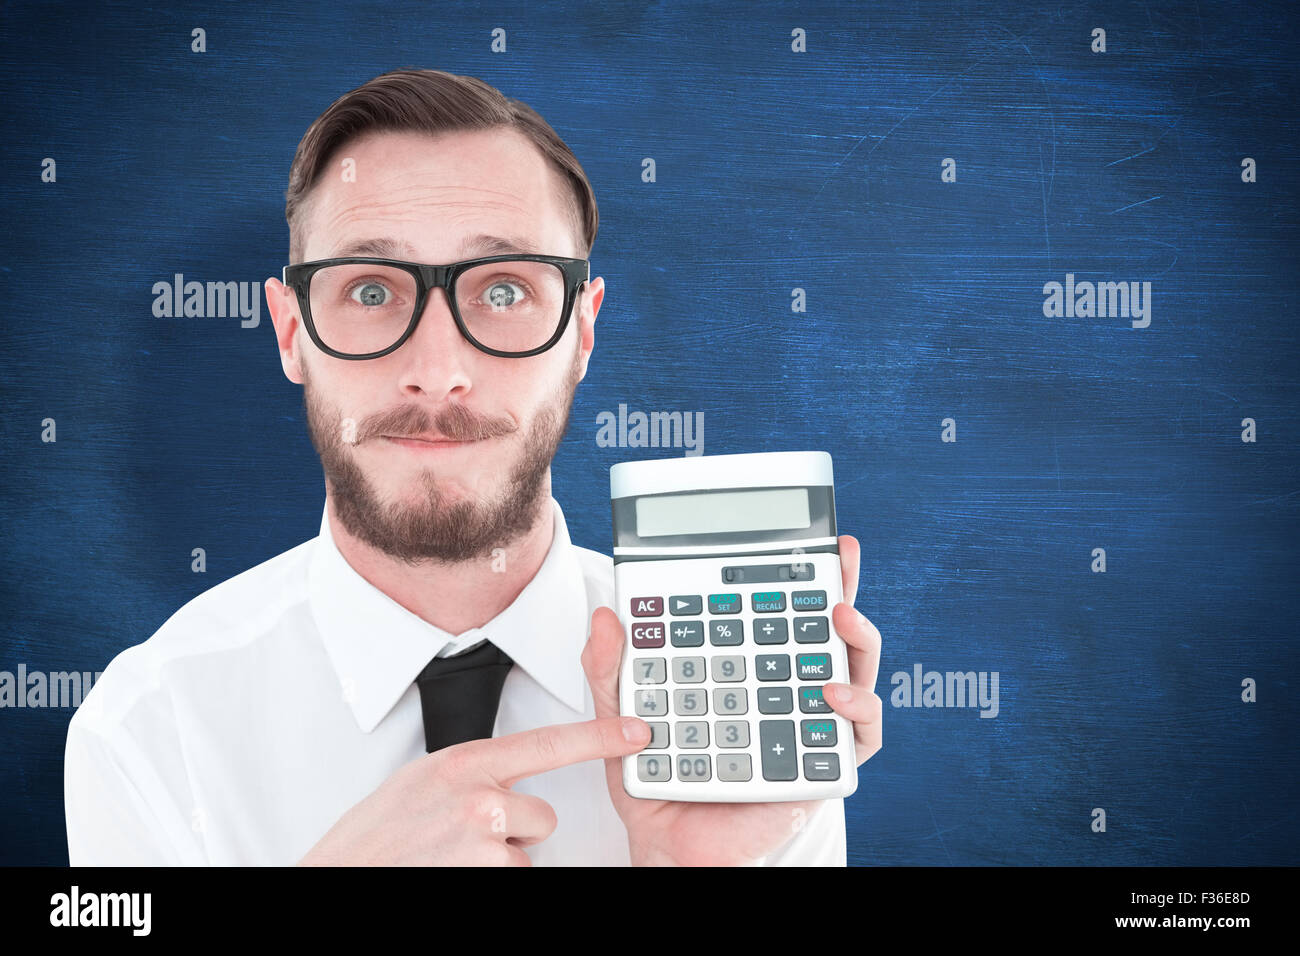 Composite image of geeky businessman pointing to calculator - Stock Image